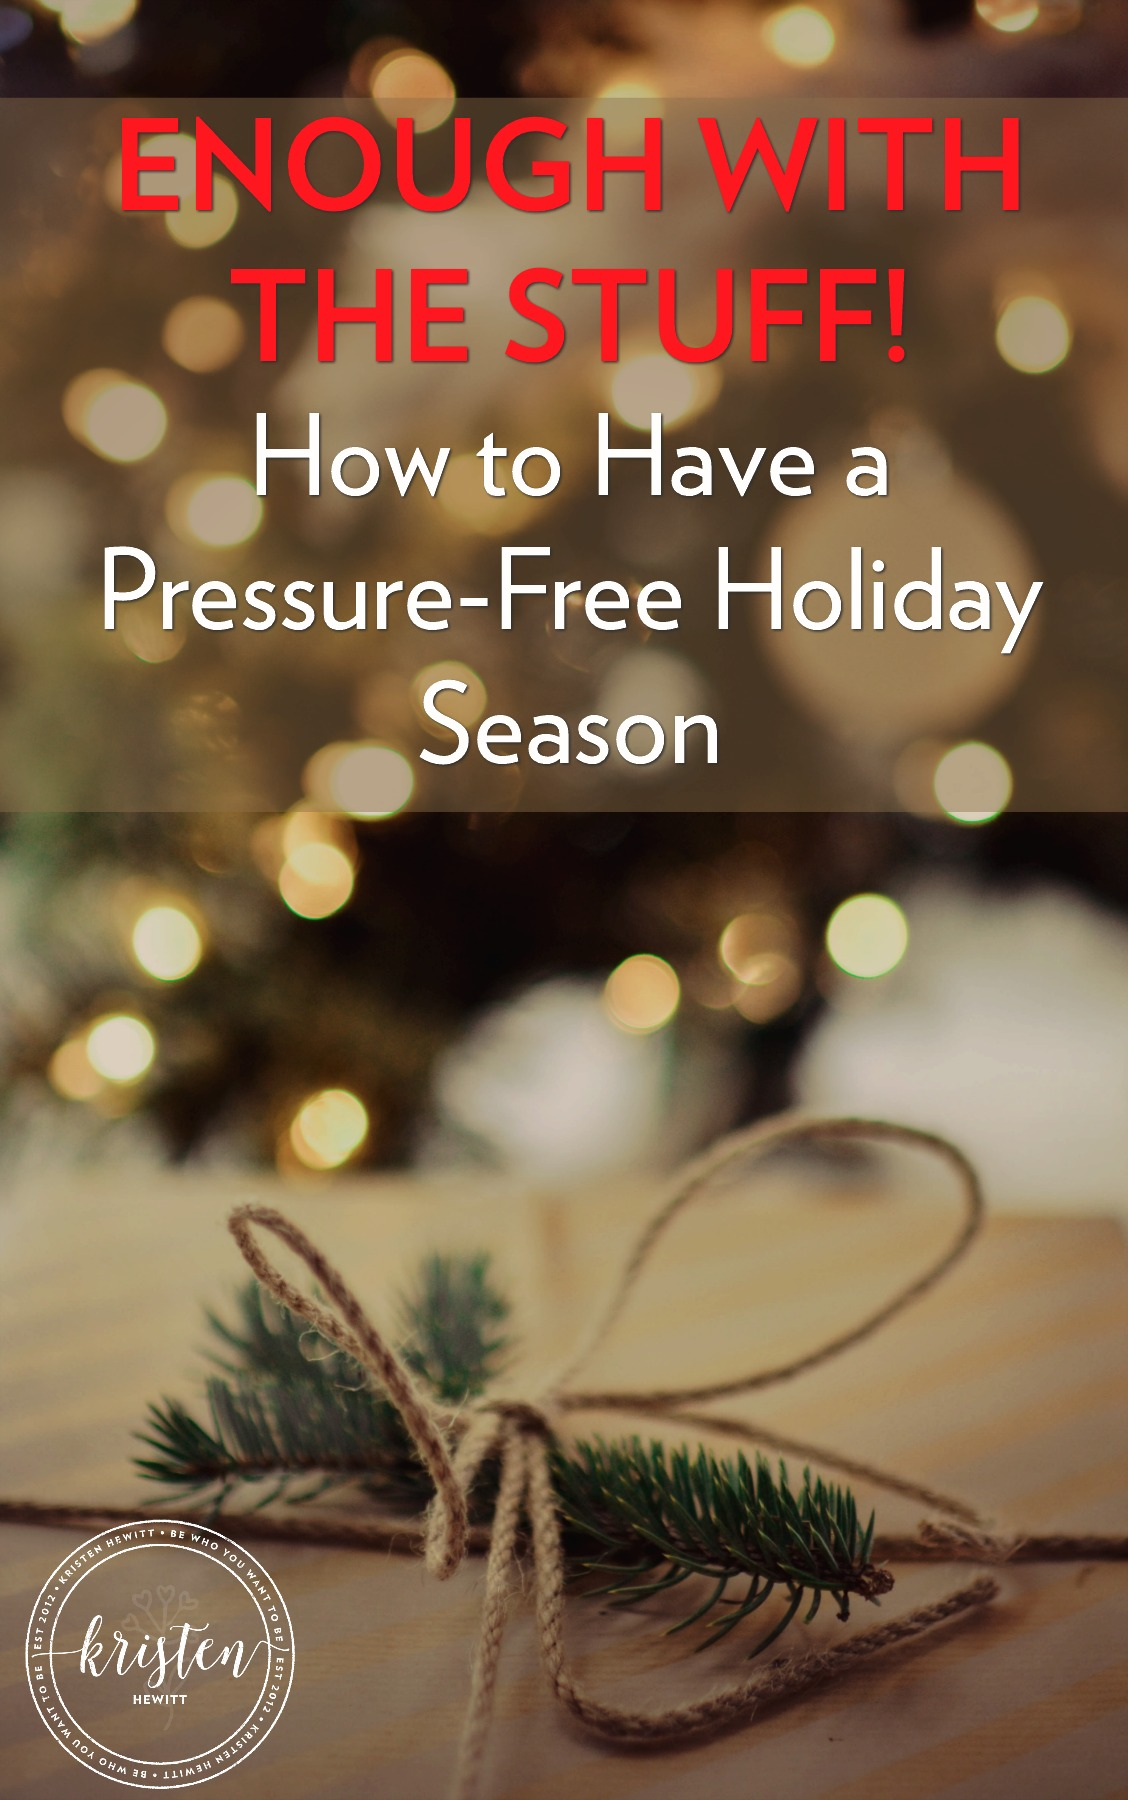 Are you tired of the holiday ads and pressure to make the holidays perfect? Take the pressure off and declutter your holiday season.